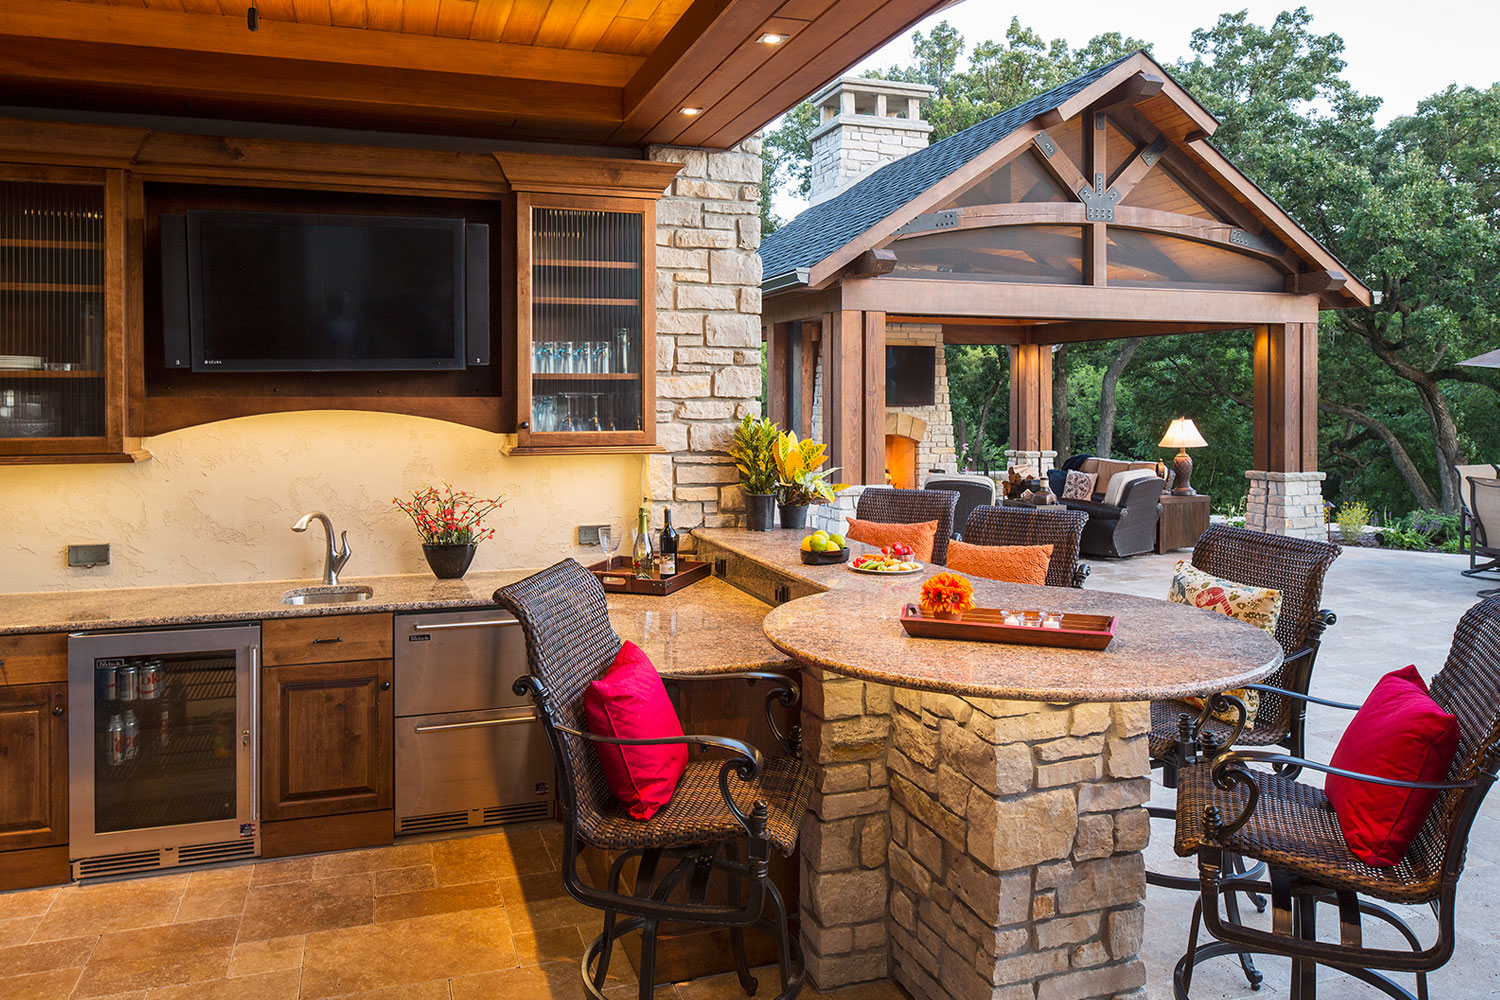 Outdoor Bar with TV, Beverage Cooler, and Sink